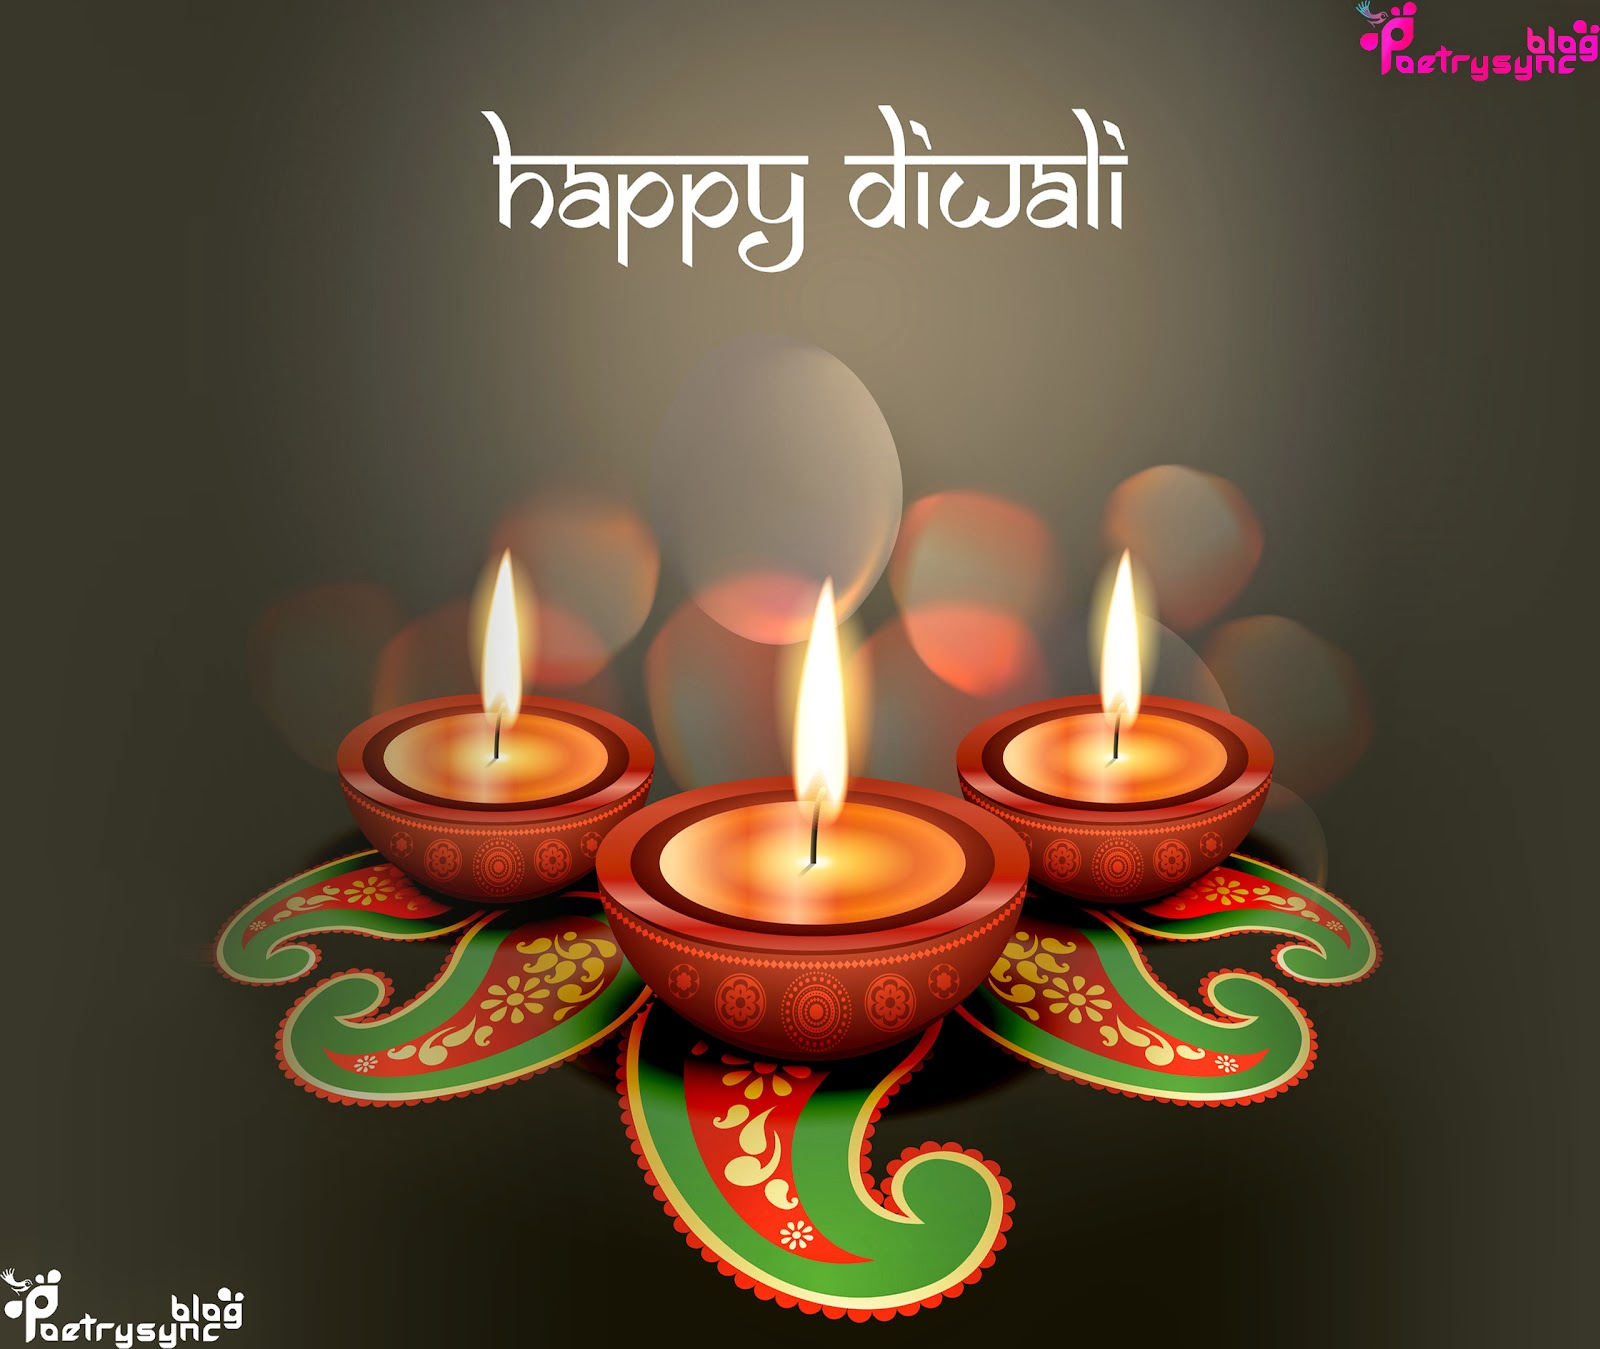 Happy diwali festival wallpapers with wishes messages in english happy diwali festival wallpapers with wishes messages in english poetryquotes kristyandbryce Choice Image